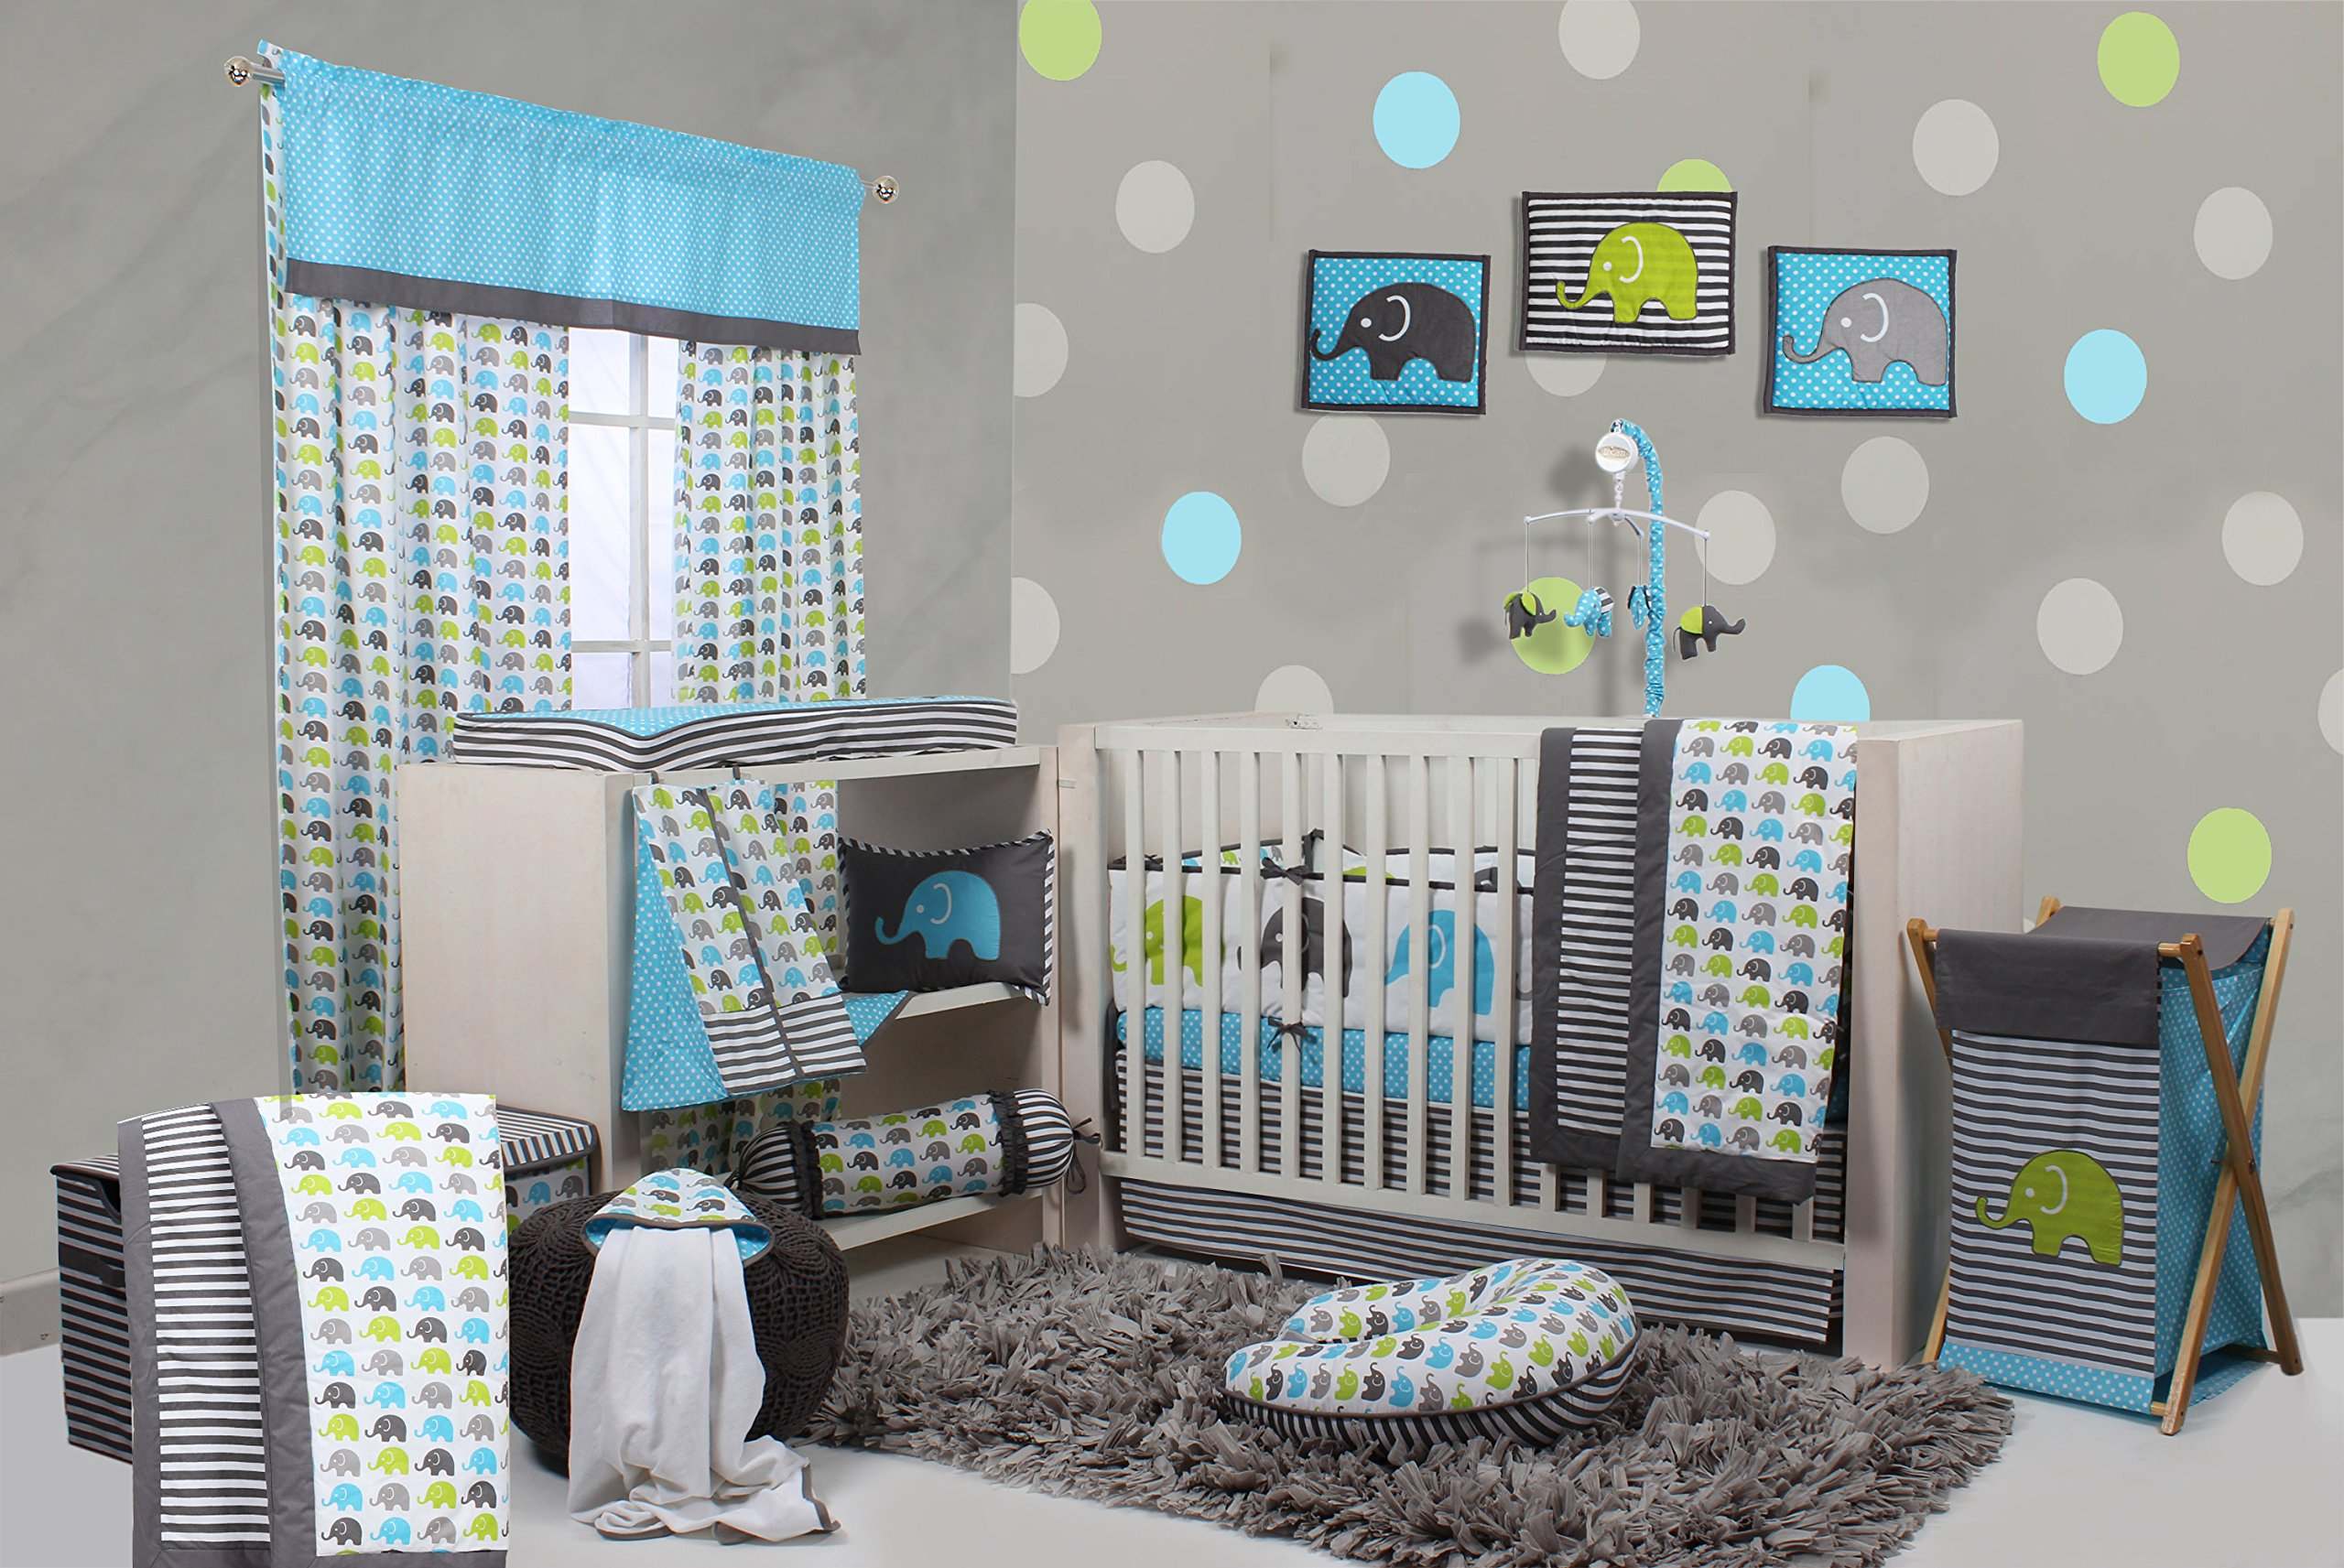 Bacati Elephants Crib Set with Bumper Pad, Aqua/Lime/Grey by Bacati